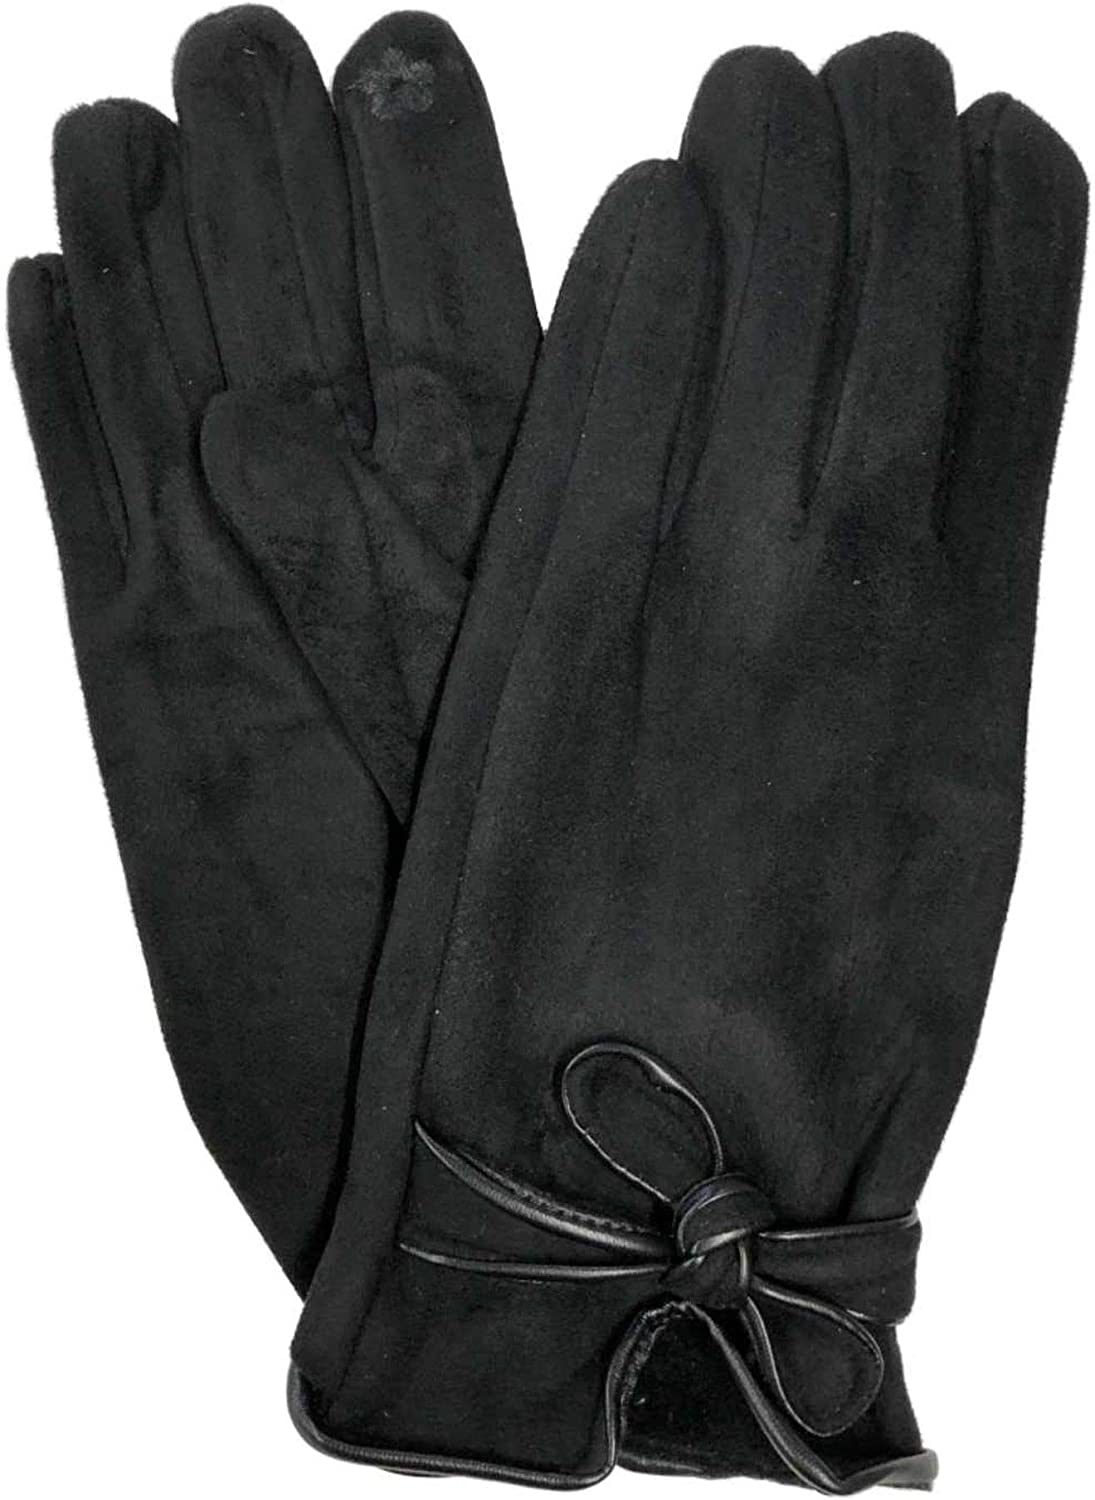 Womens Soft Black Bow Stretch Fit Texting & Tech Touchscreen Driving Gloves